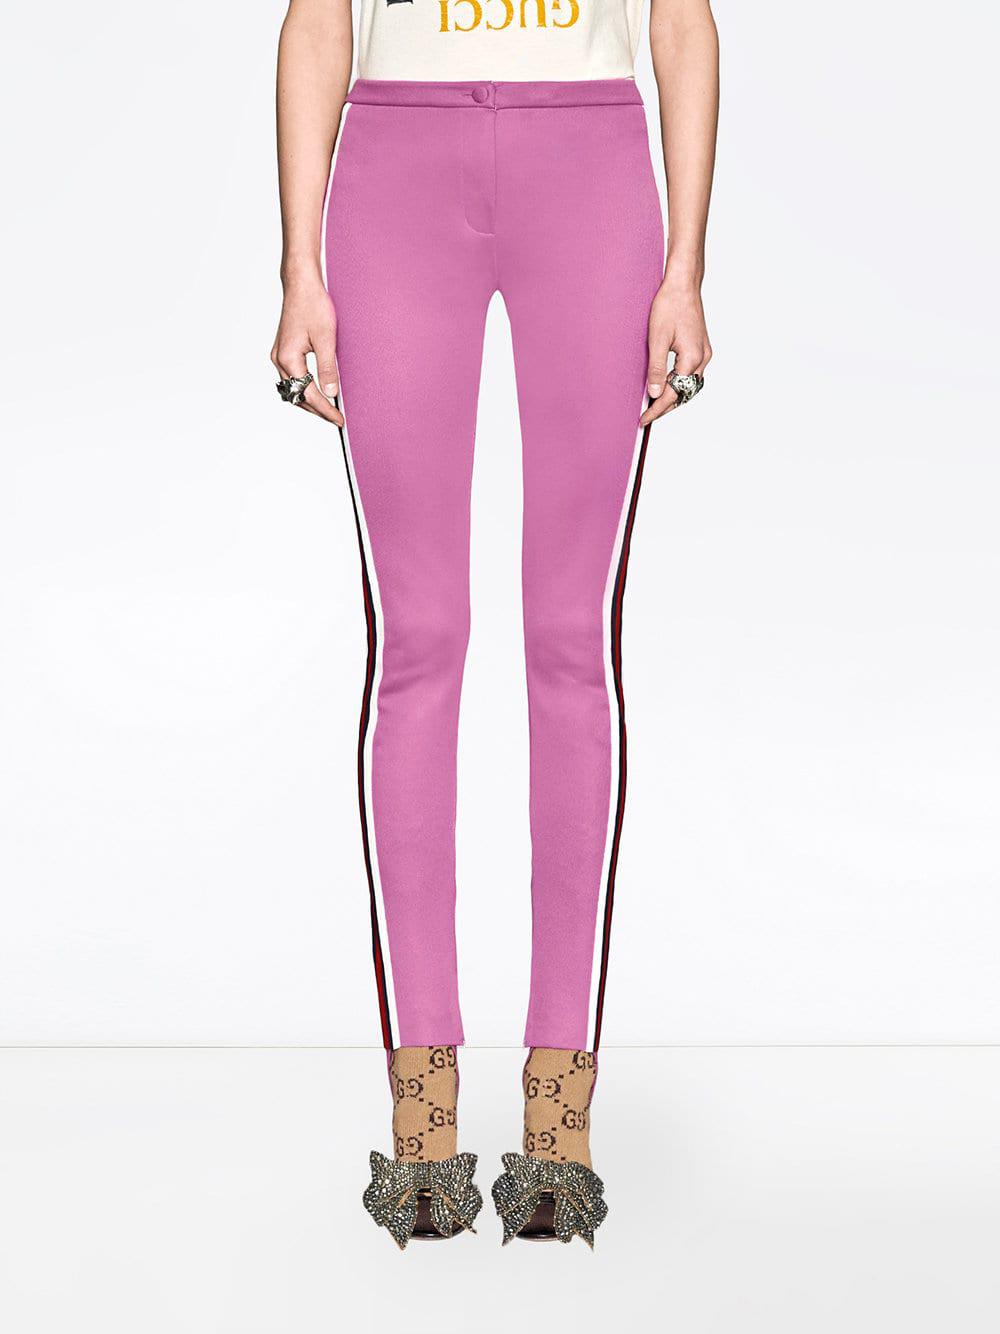 6a33d56328d Gucci - Pink Jersey Stirrup leggings With Web - Lyst. View fullscreen